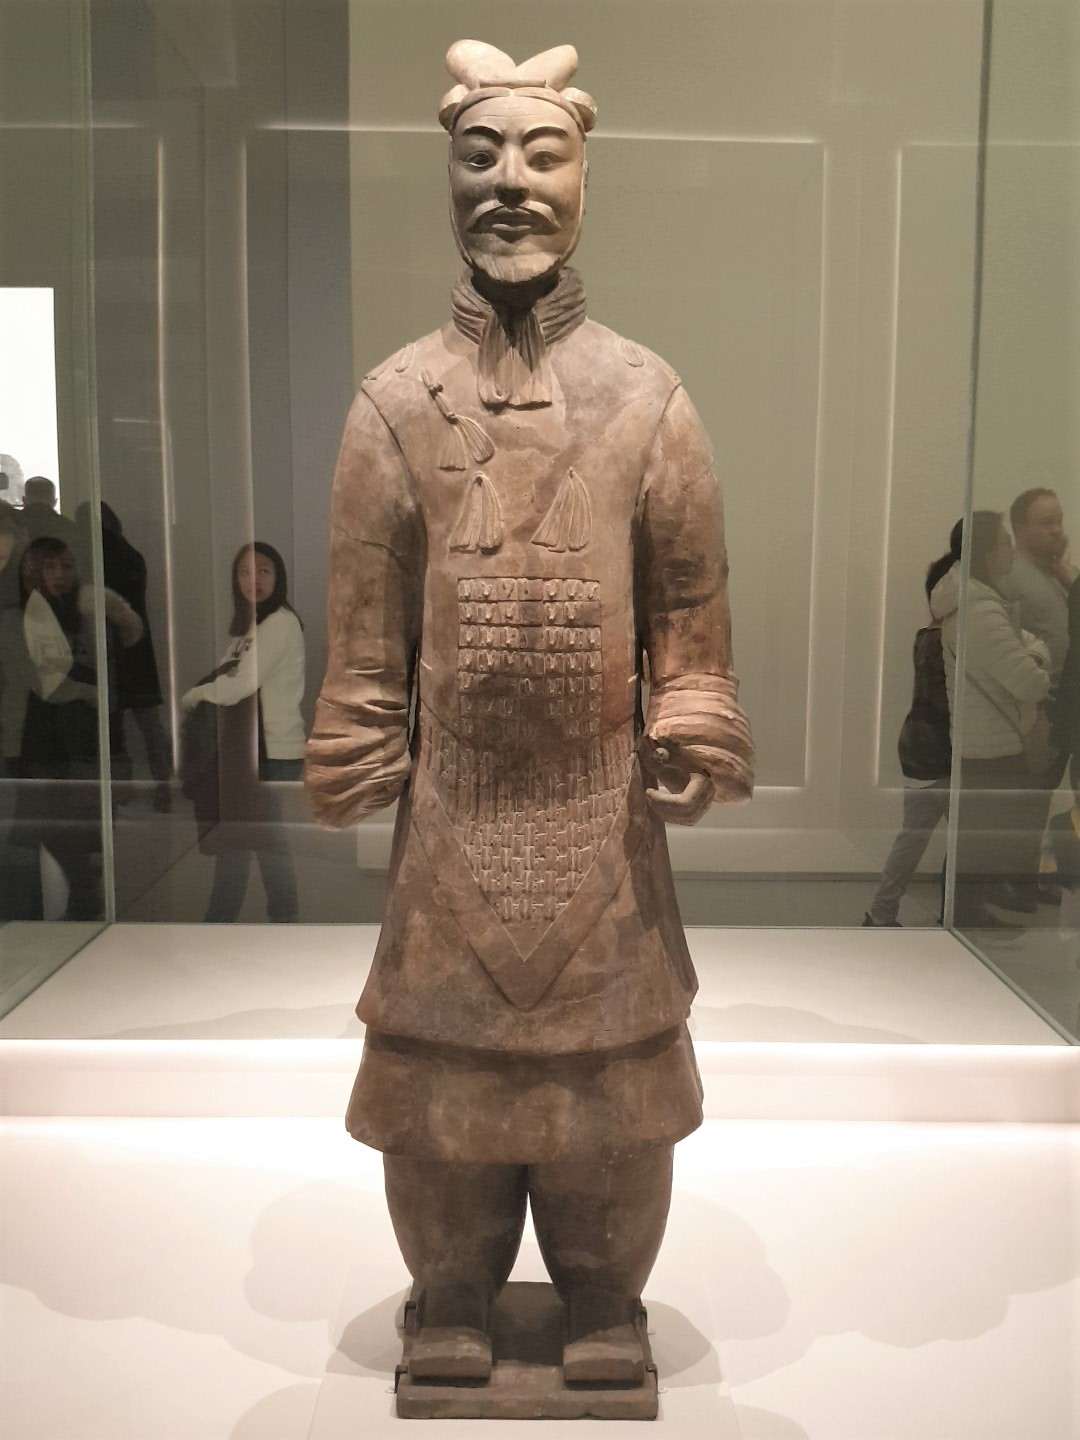 Unarmoured General. Qin Dynasty 221-207 BCE. Earthenware. Photograph by Rasheeda Wilson, used with permission.